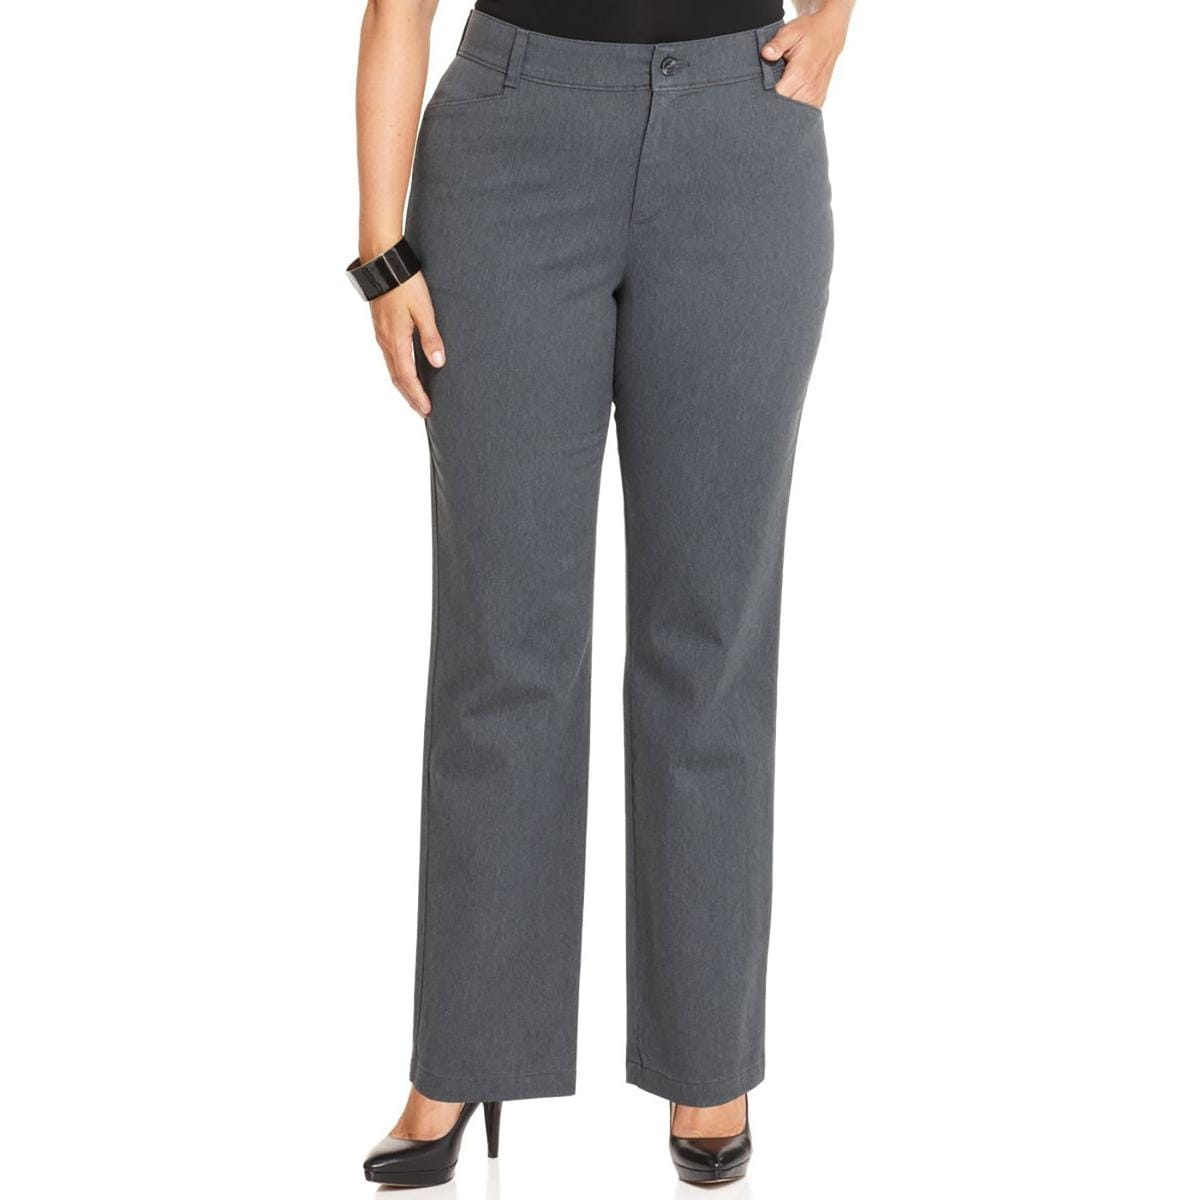 71a592ae88e Shop Lee Platinum Label Womens Plus Straight Leg Pants Relaxed Fit Flat  Front - Free Shipping On Orders Over  45 - Overstock.com - 13806375